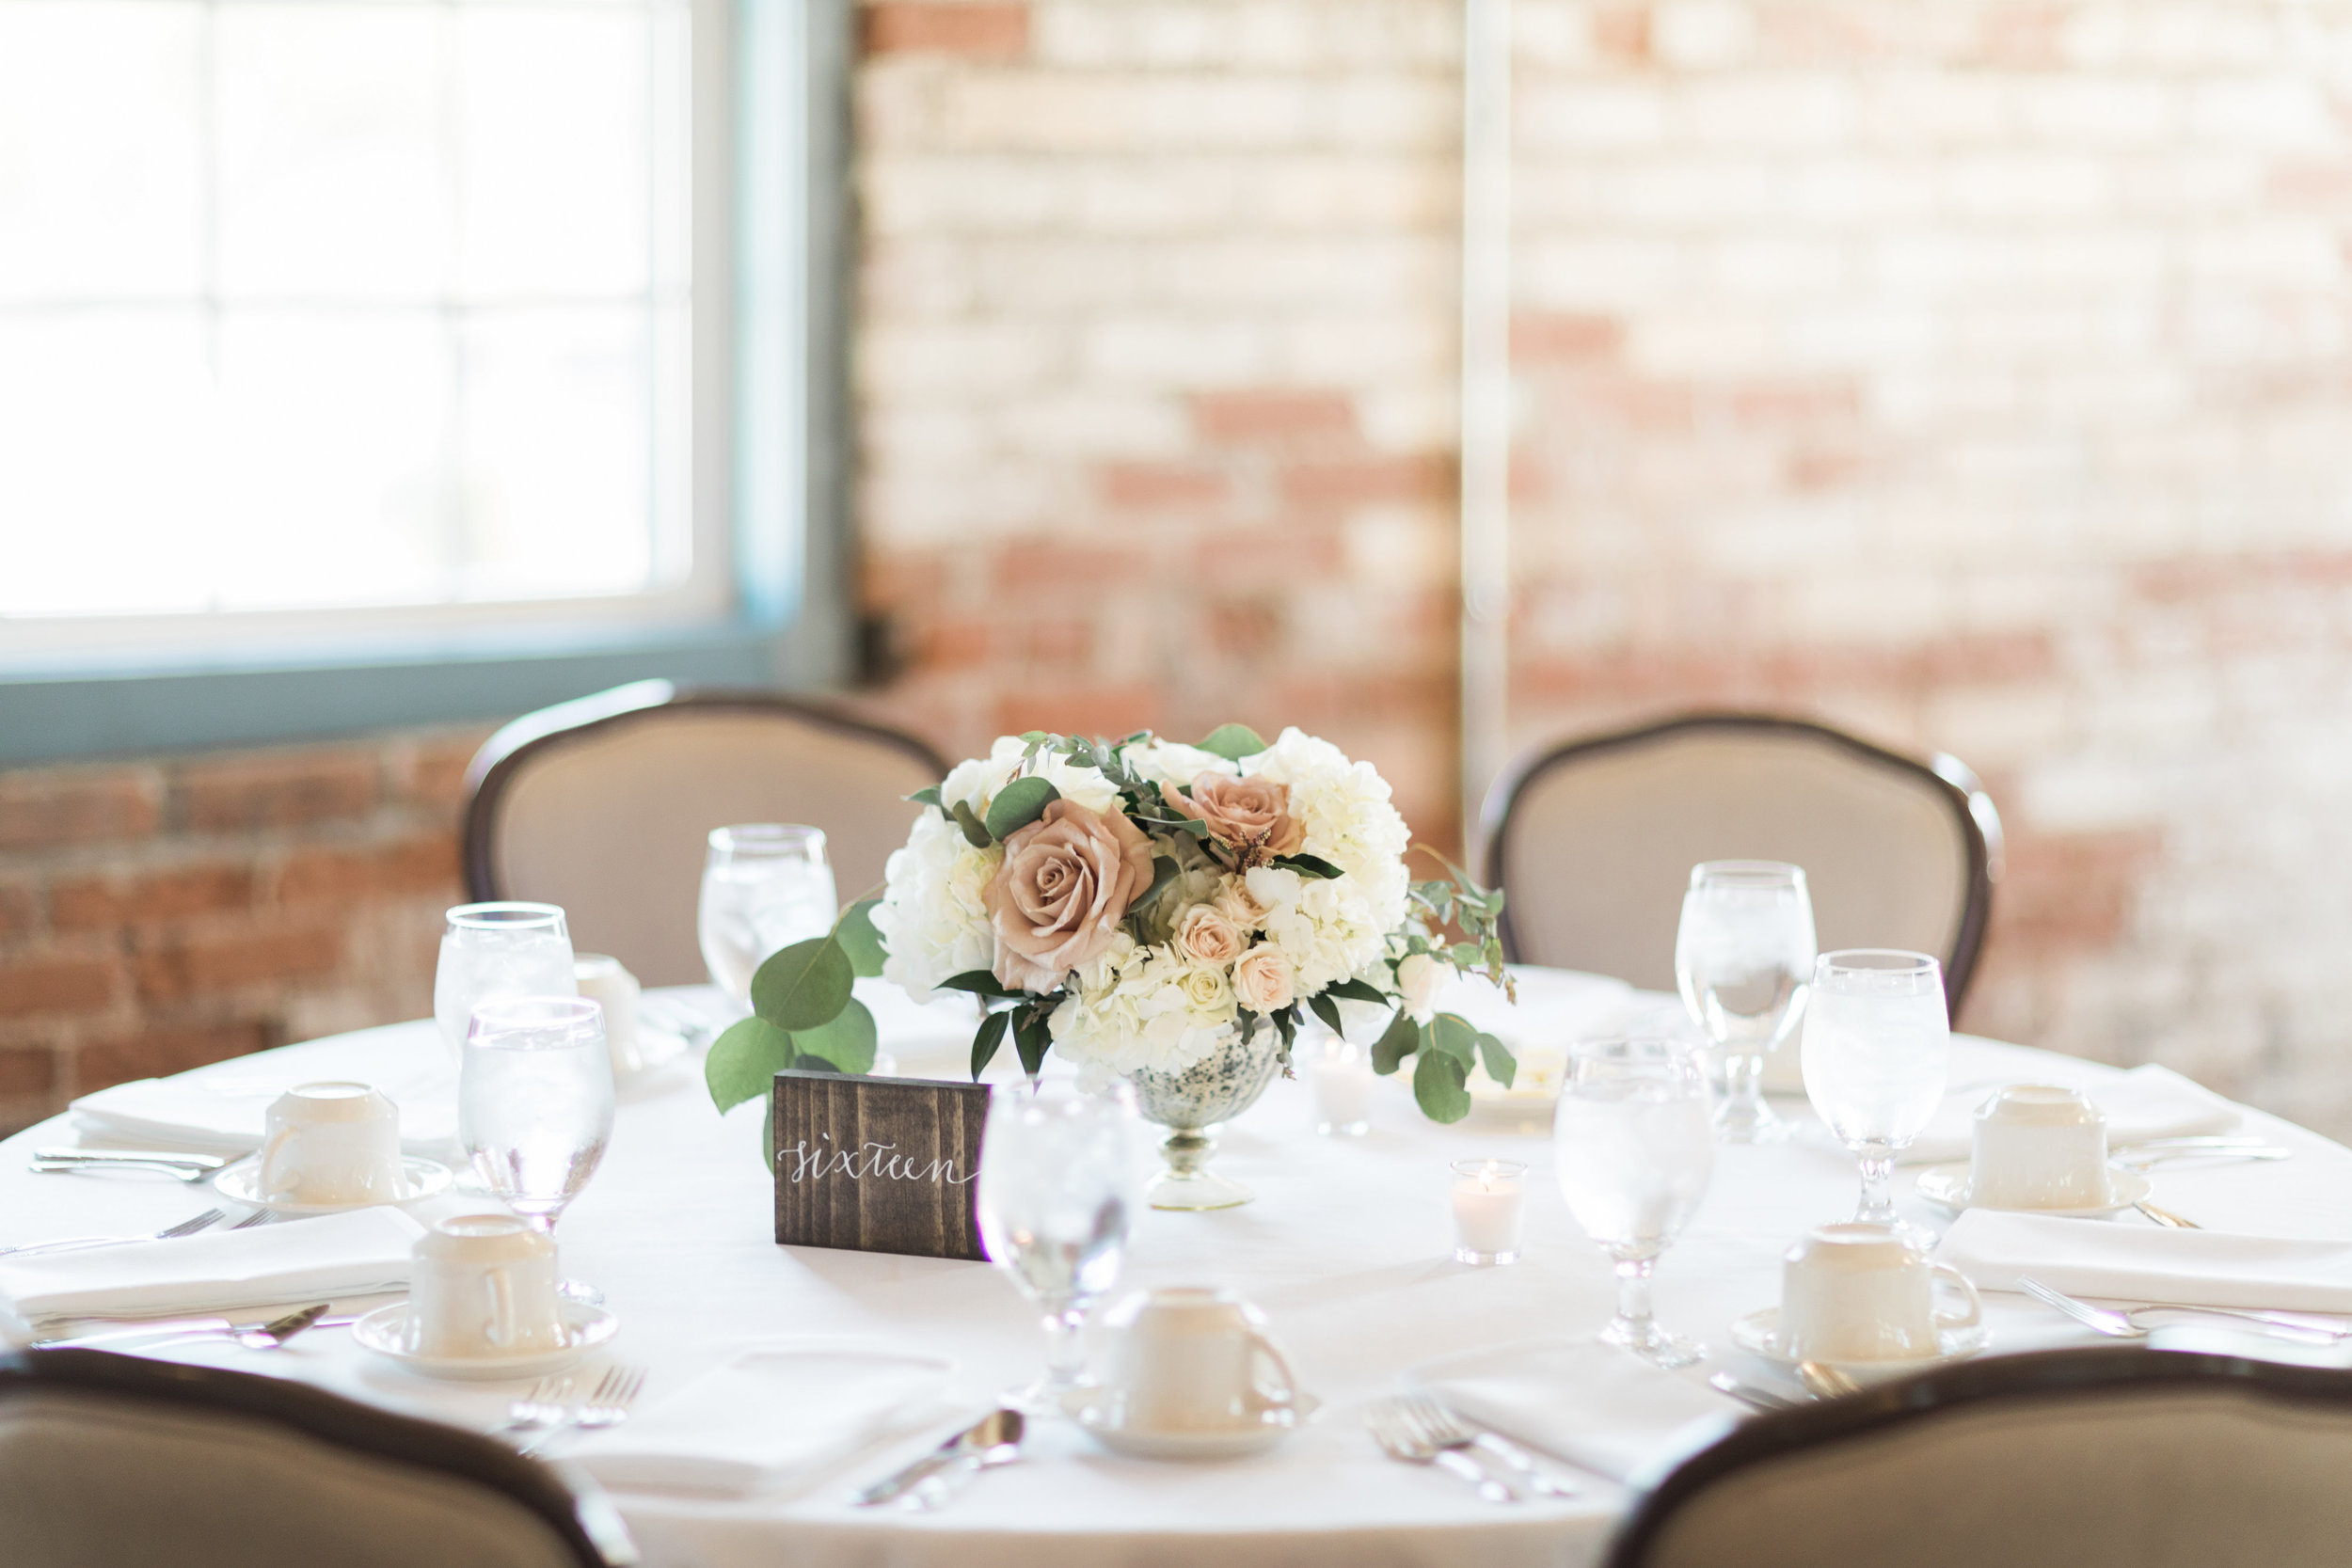 Cory & Jackie Photography  |  Stellaluna Events Florals